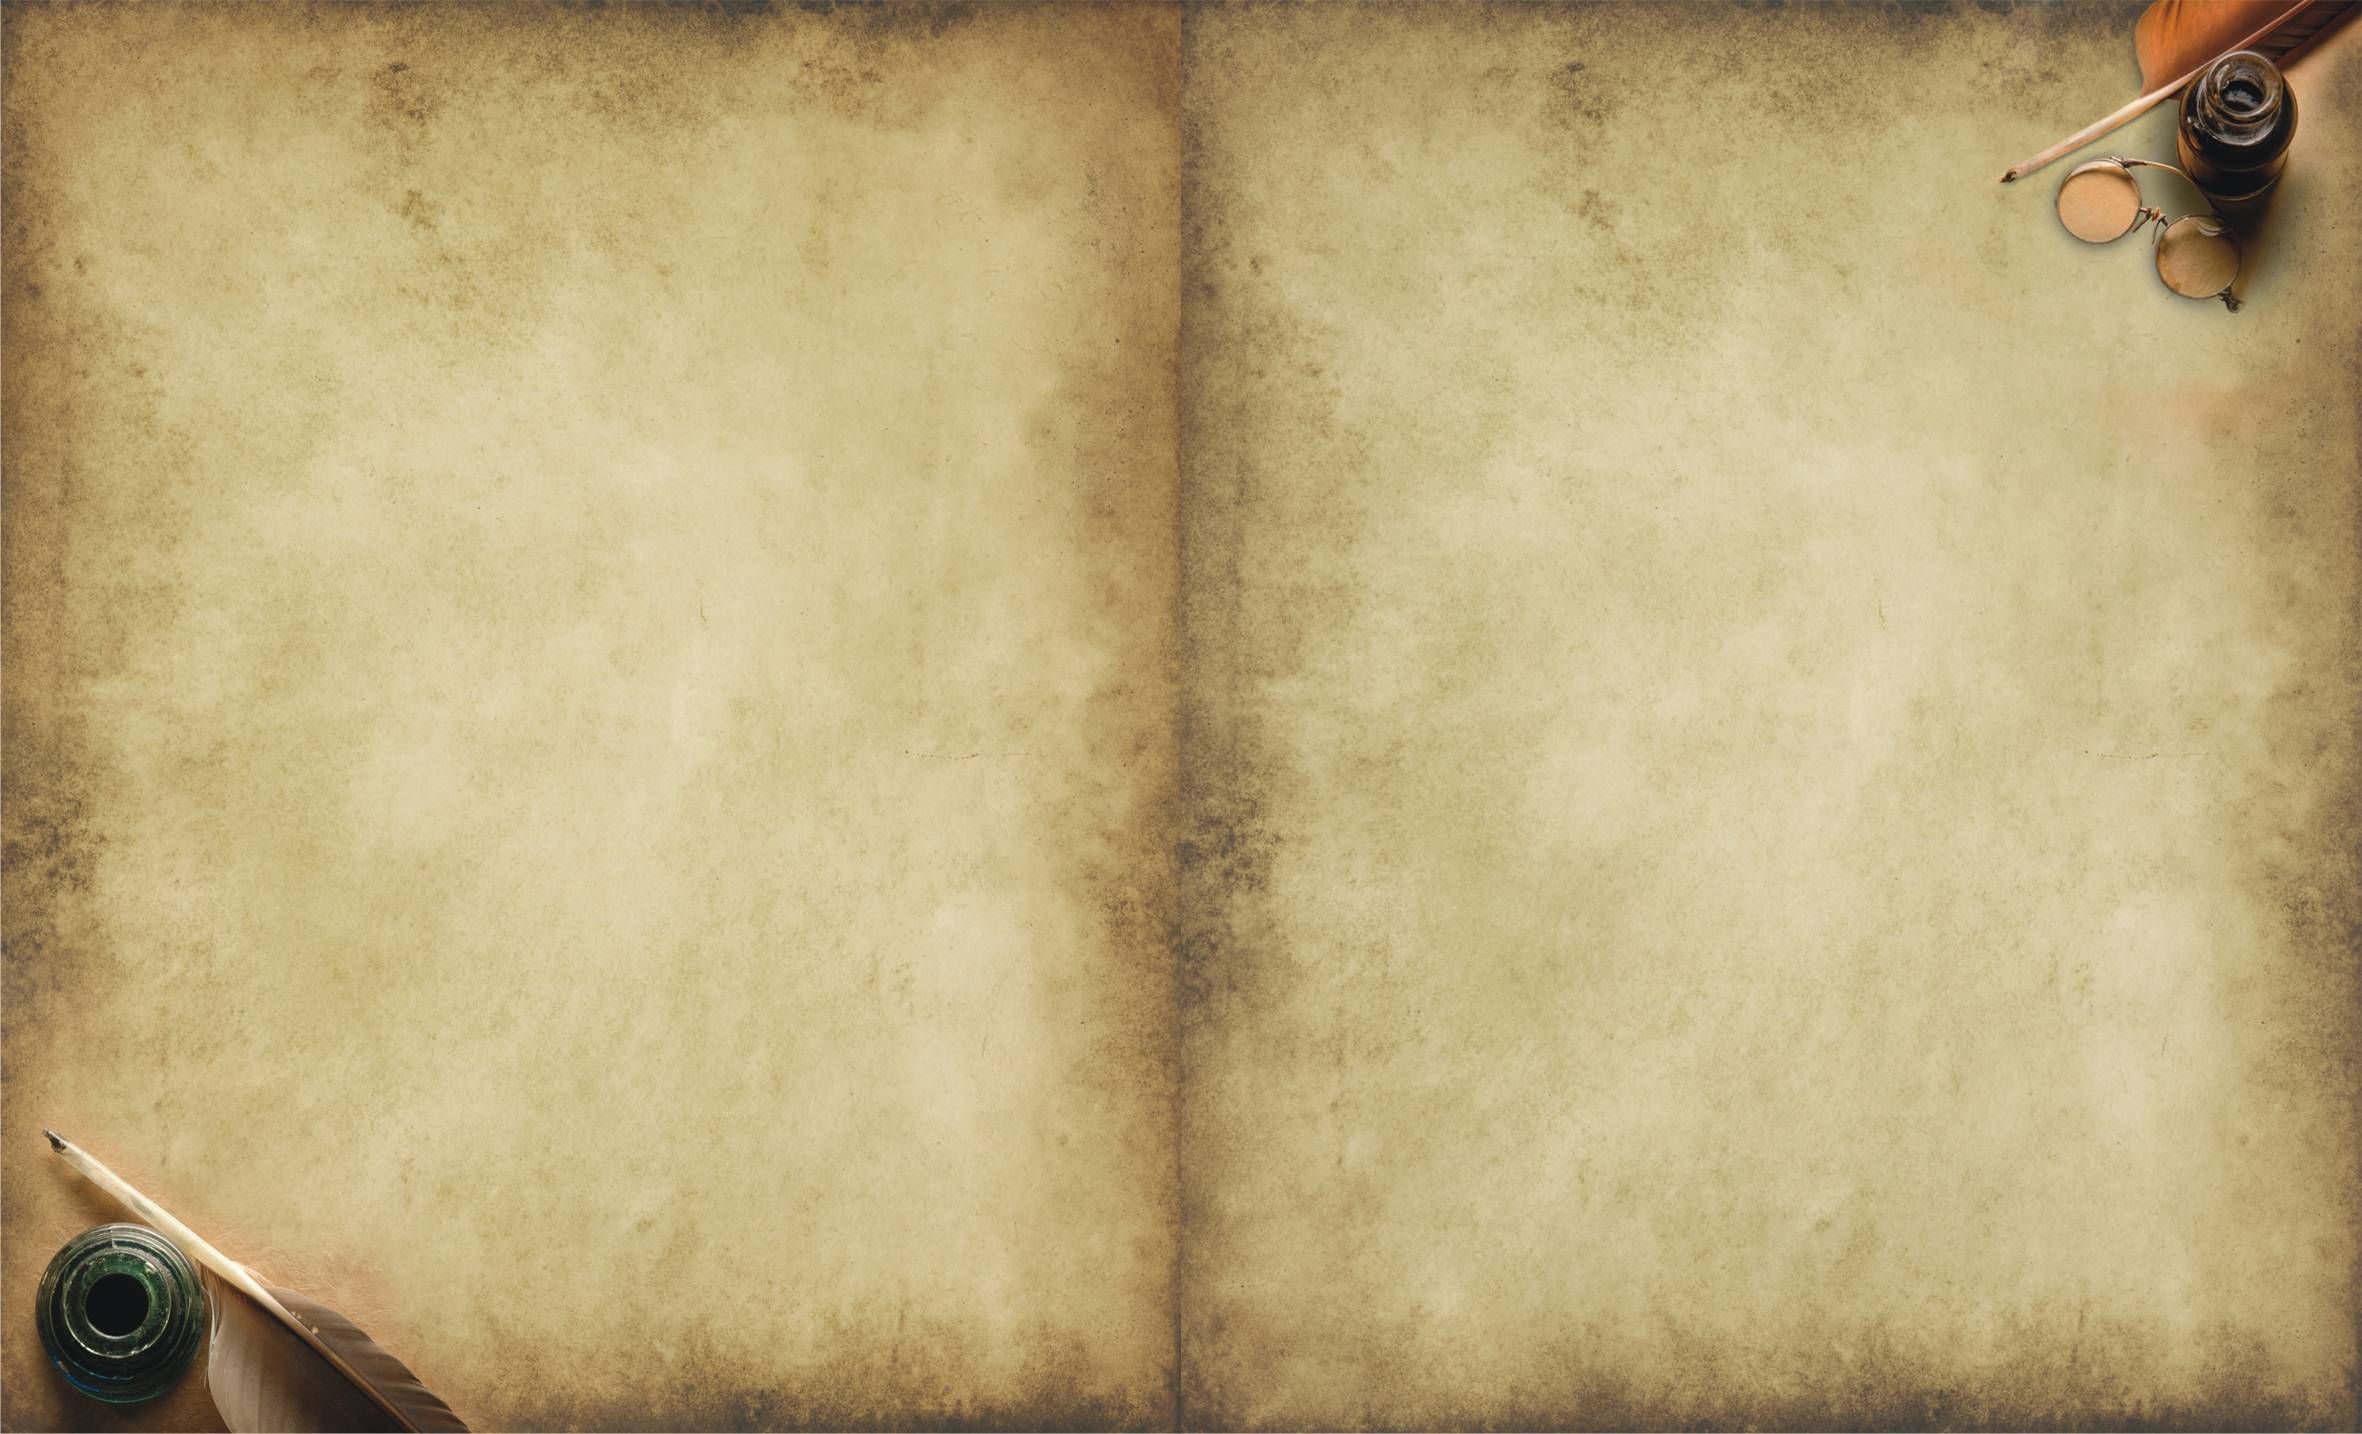 Wallpapers Old Paper Wallpaper Cave – Diary Paper Template